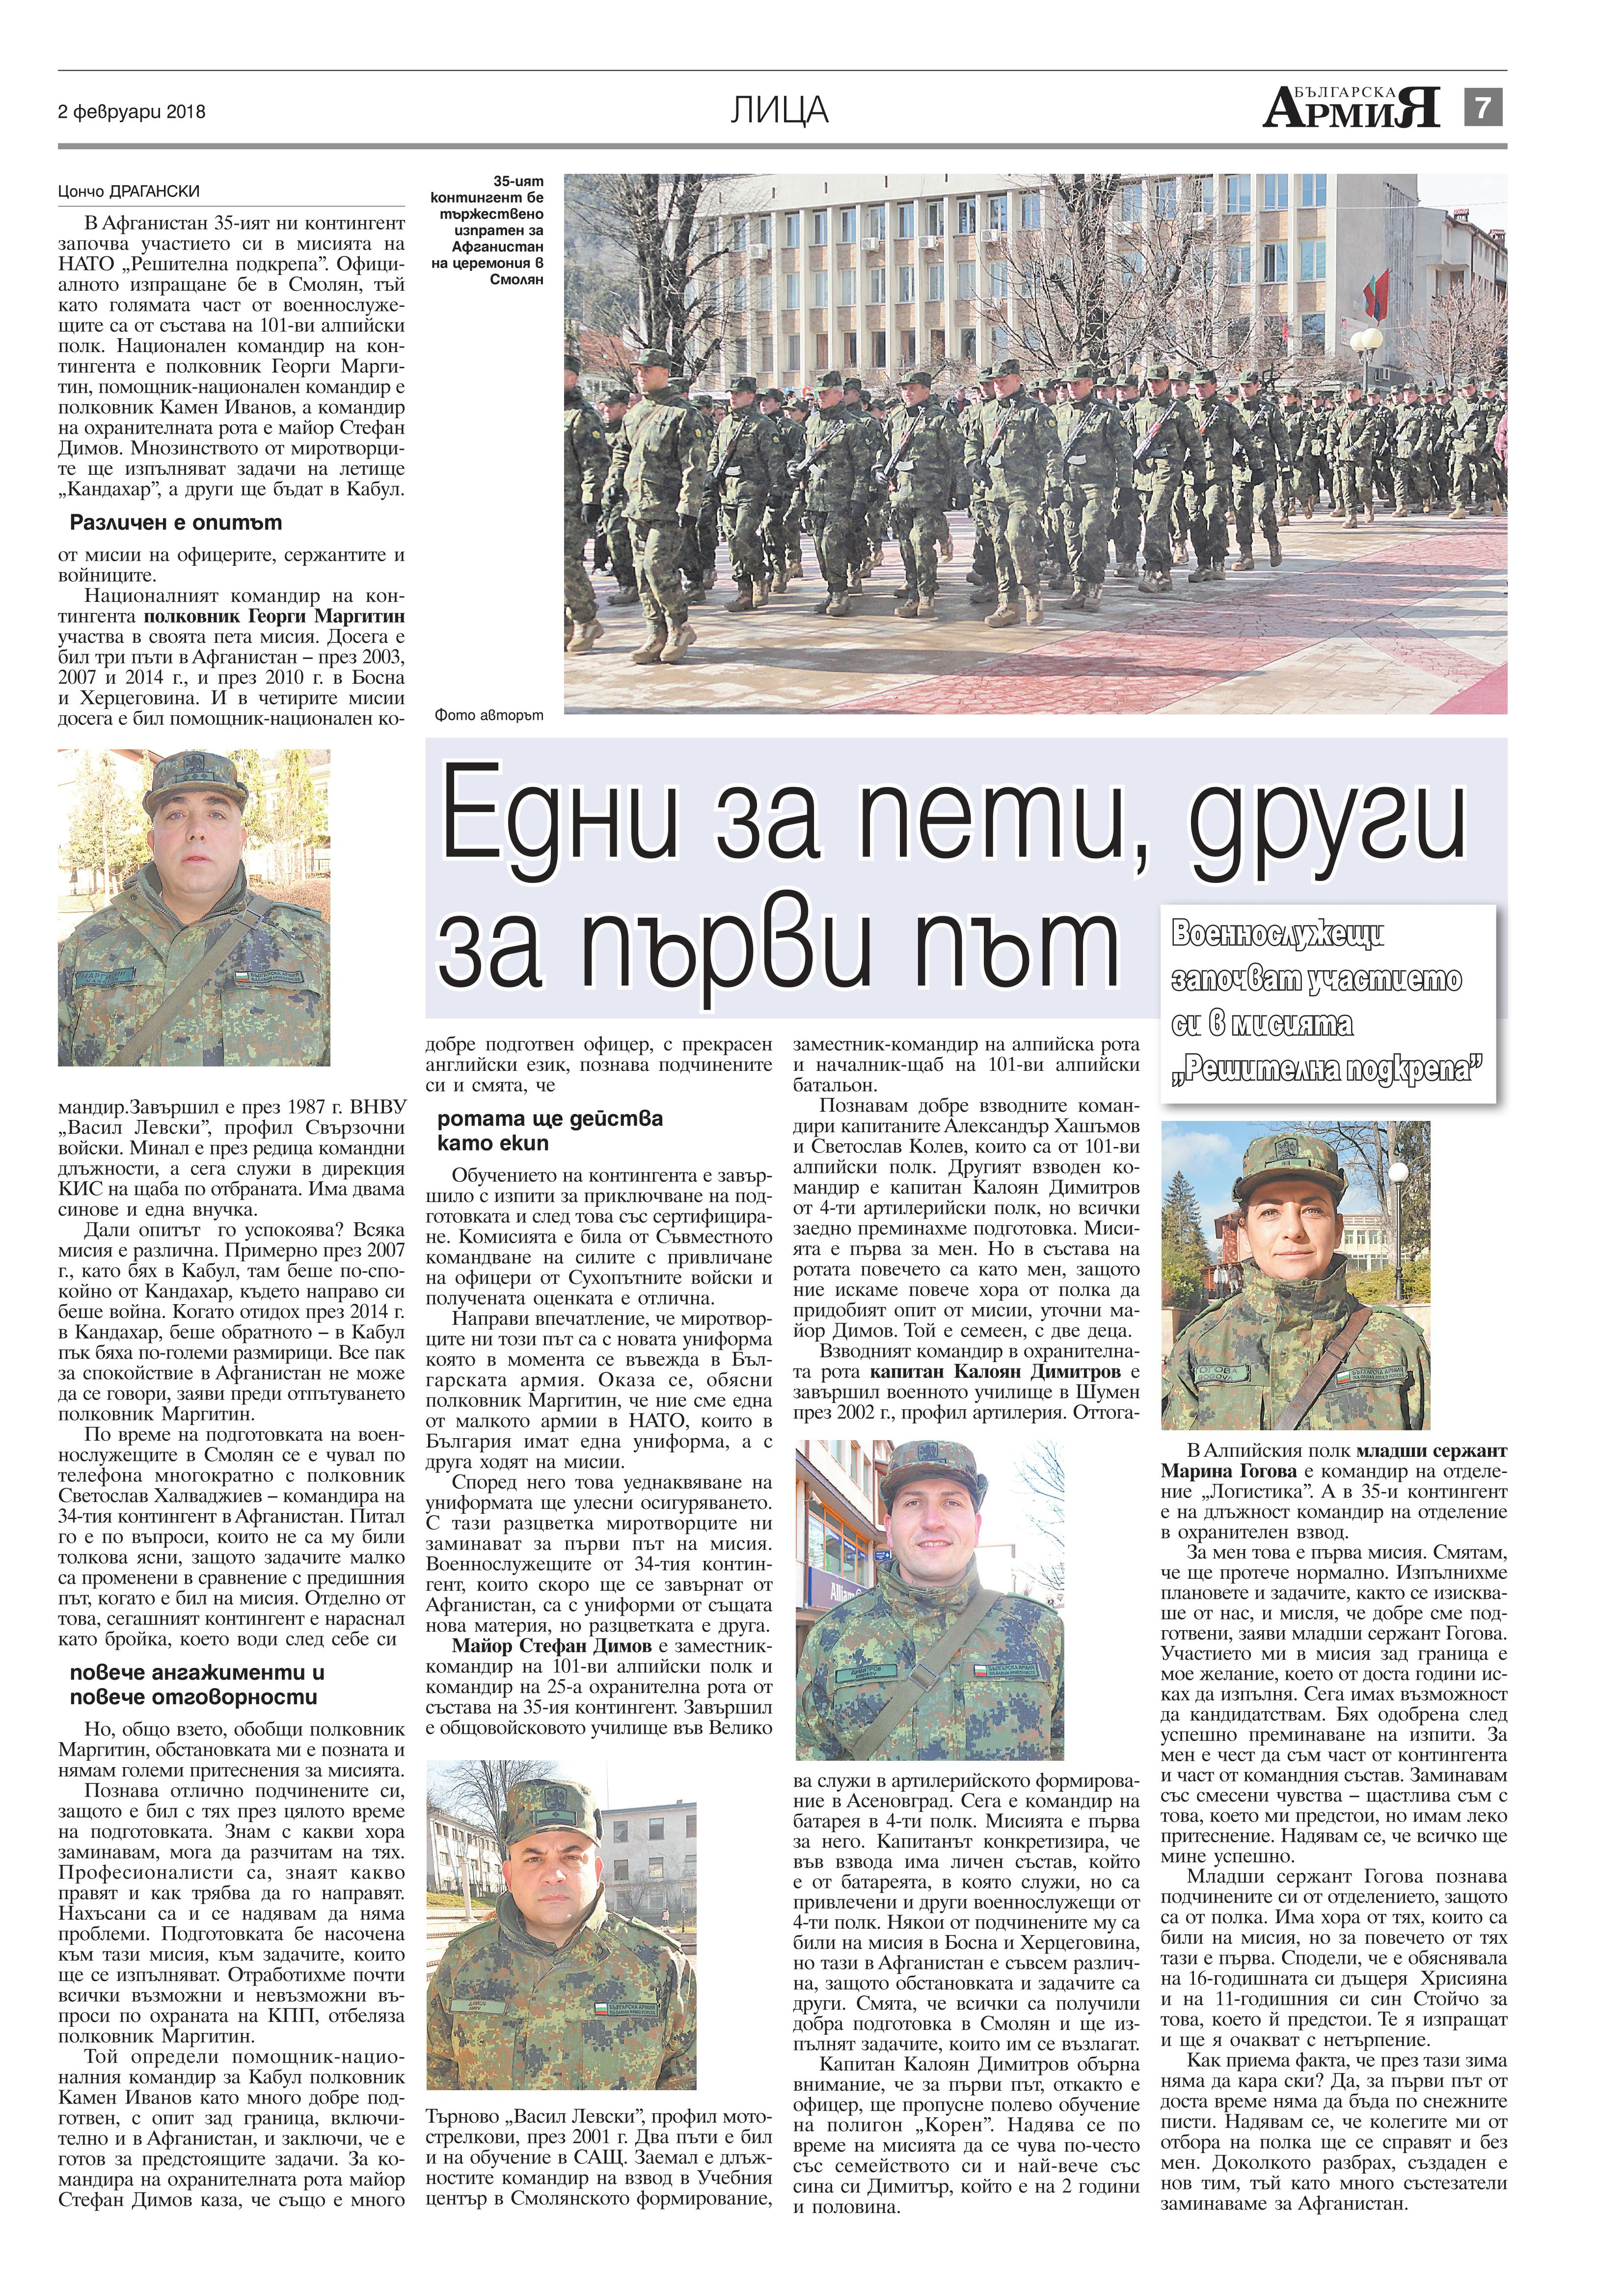 https://armymedia.bg/wp-content/uploads/2015/06/07.page1_-36.jpg